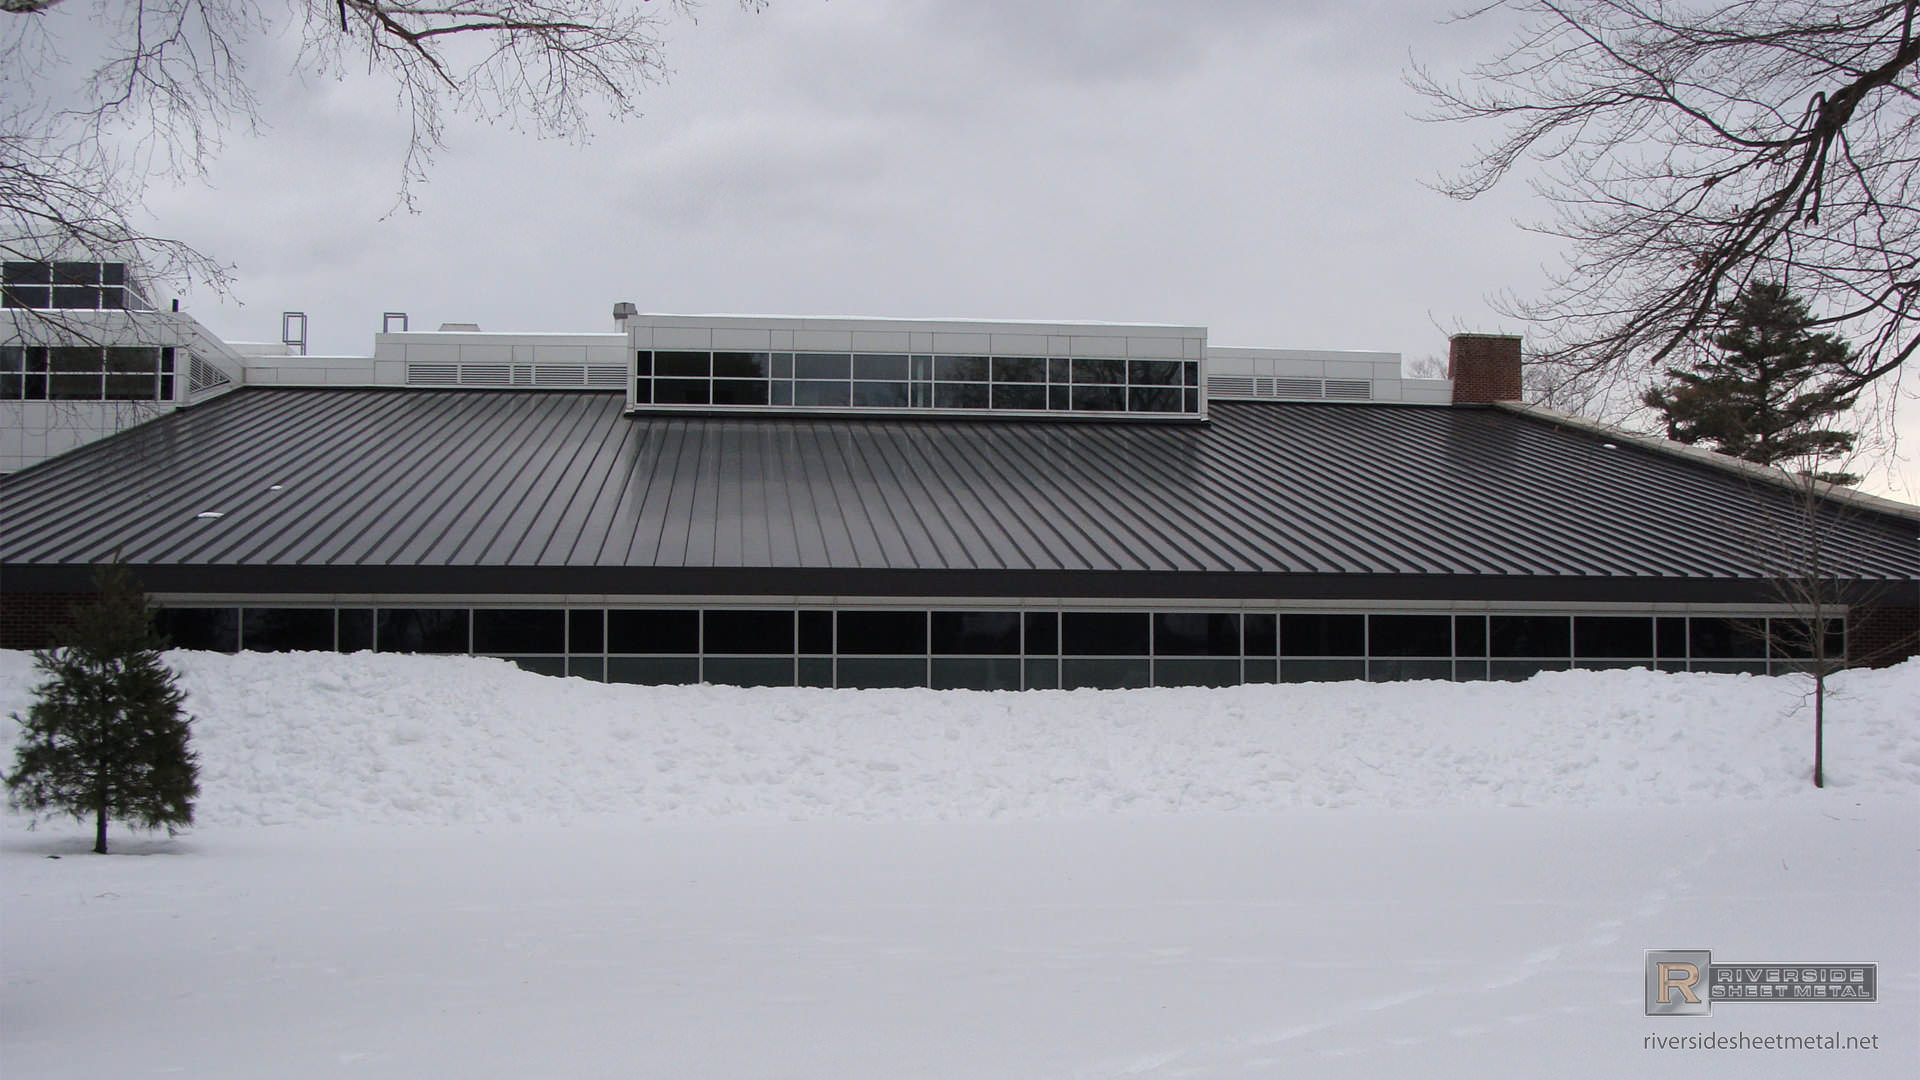 Bronze Aluminum Roof Without Snow On Metal Roof Panels